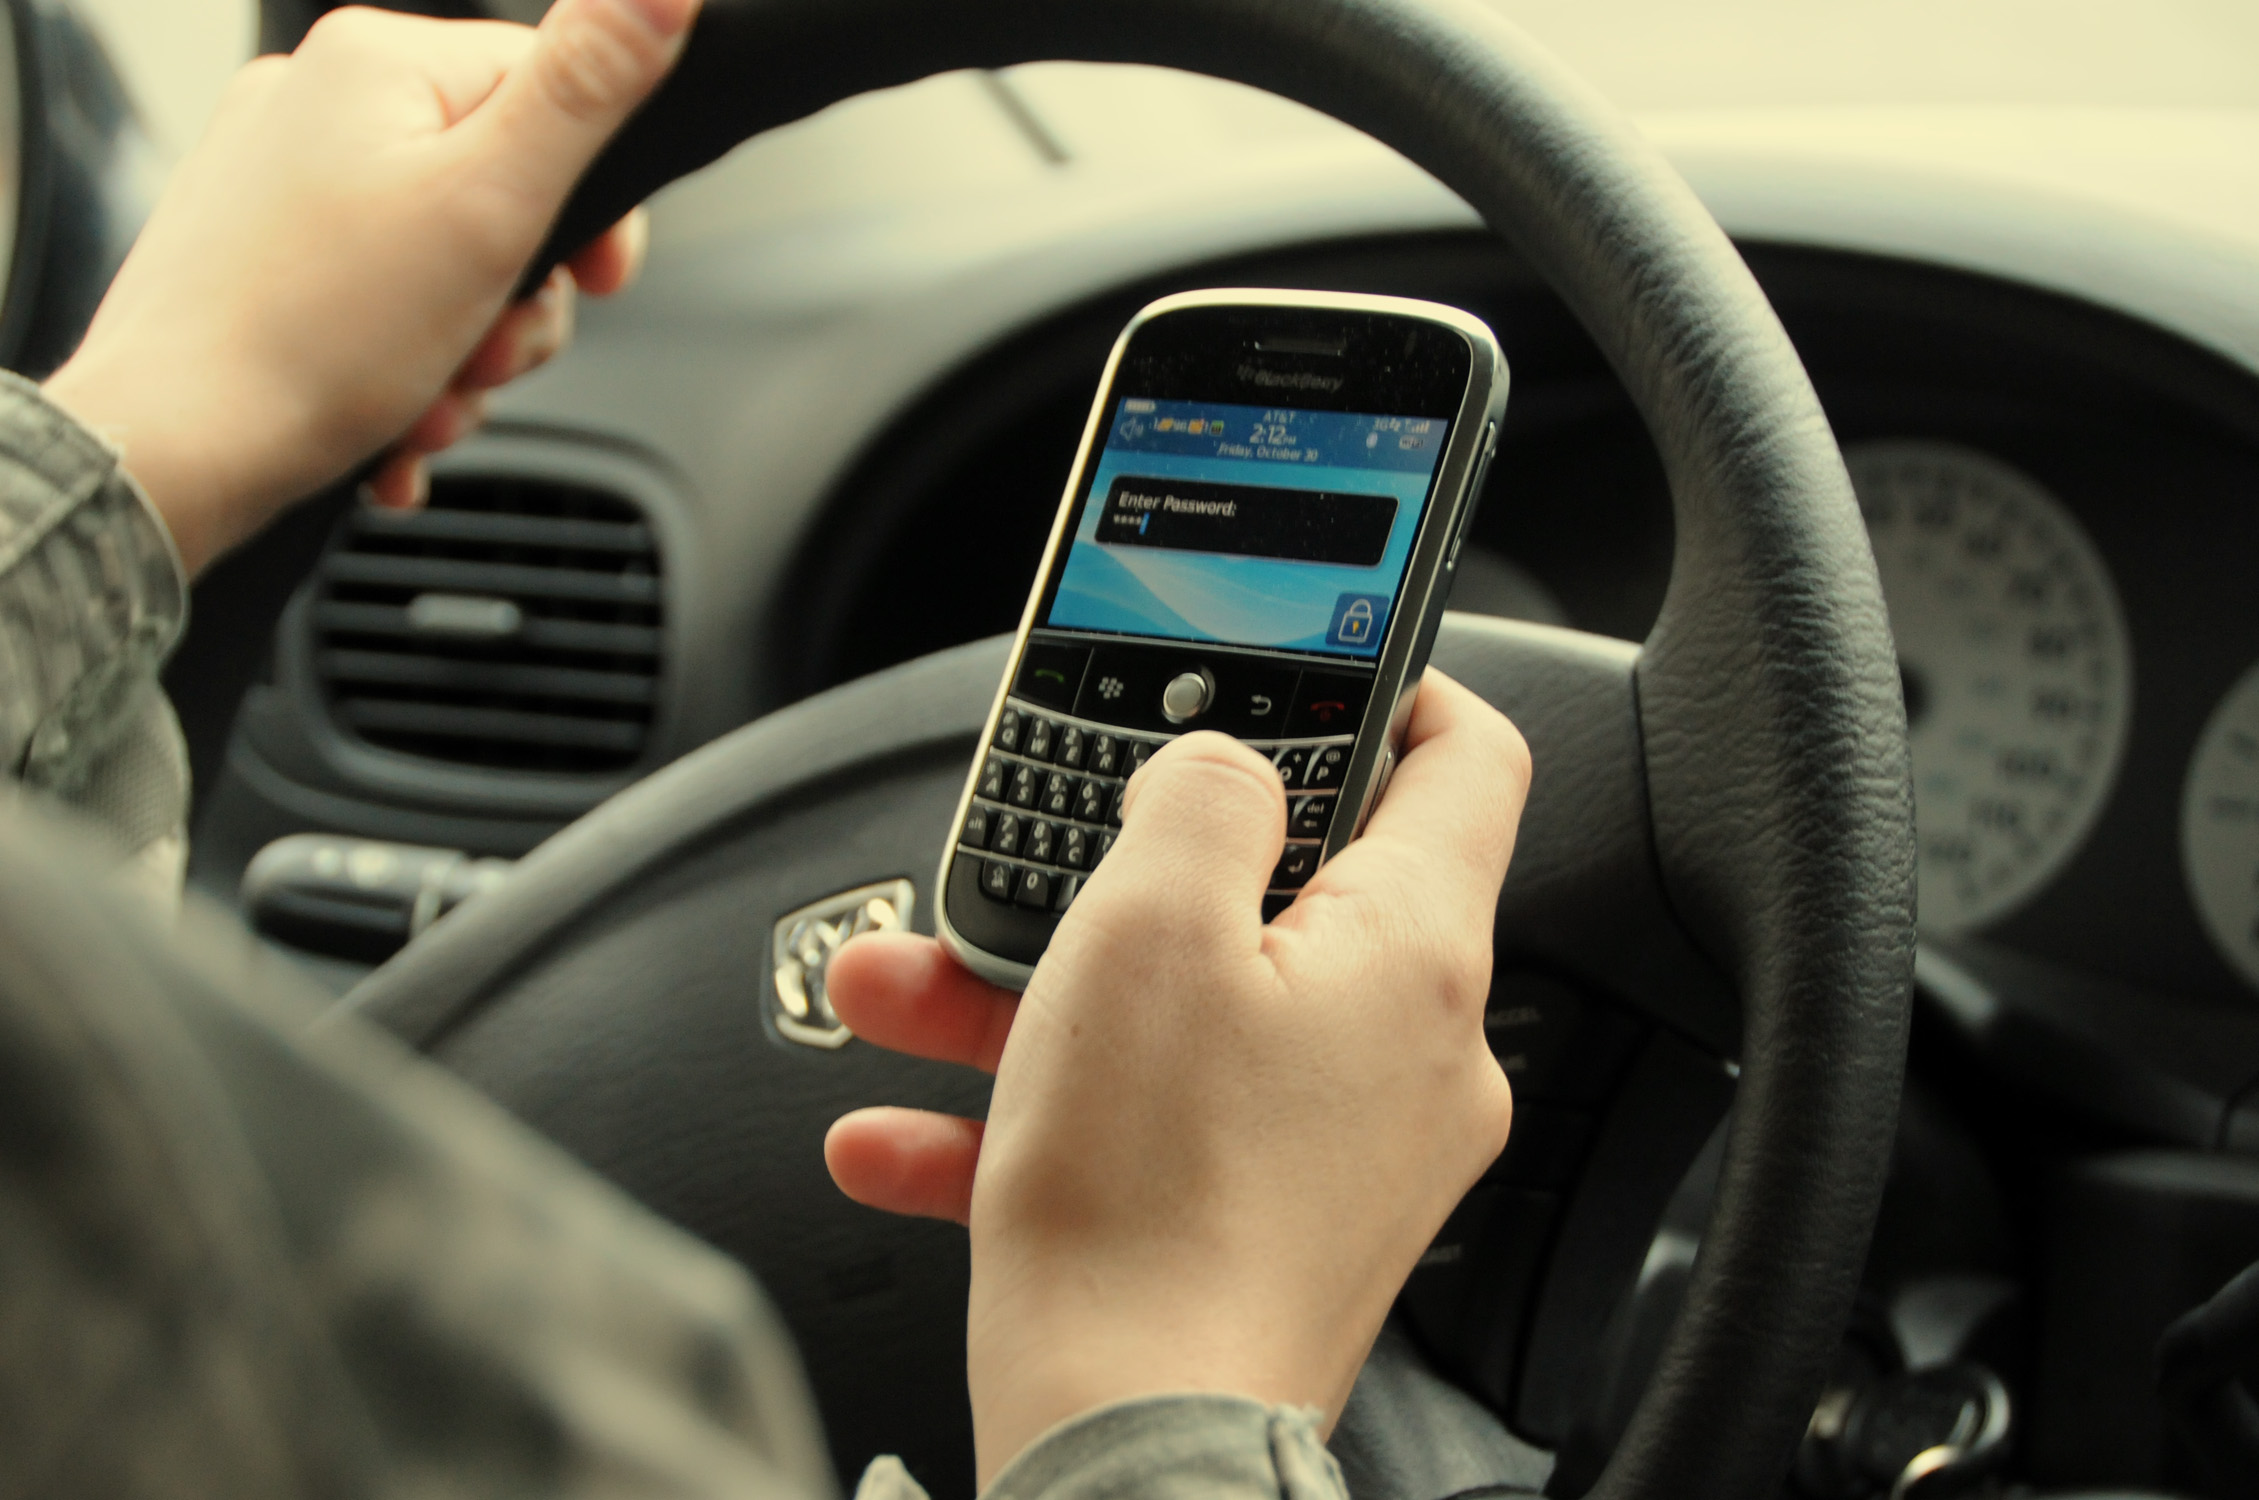 Bigger Fines for Using Mobile Phone Whilst Driving